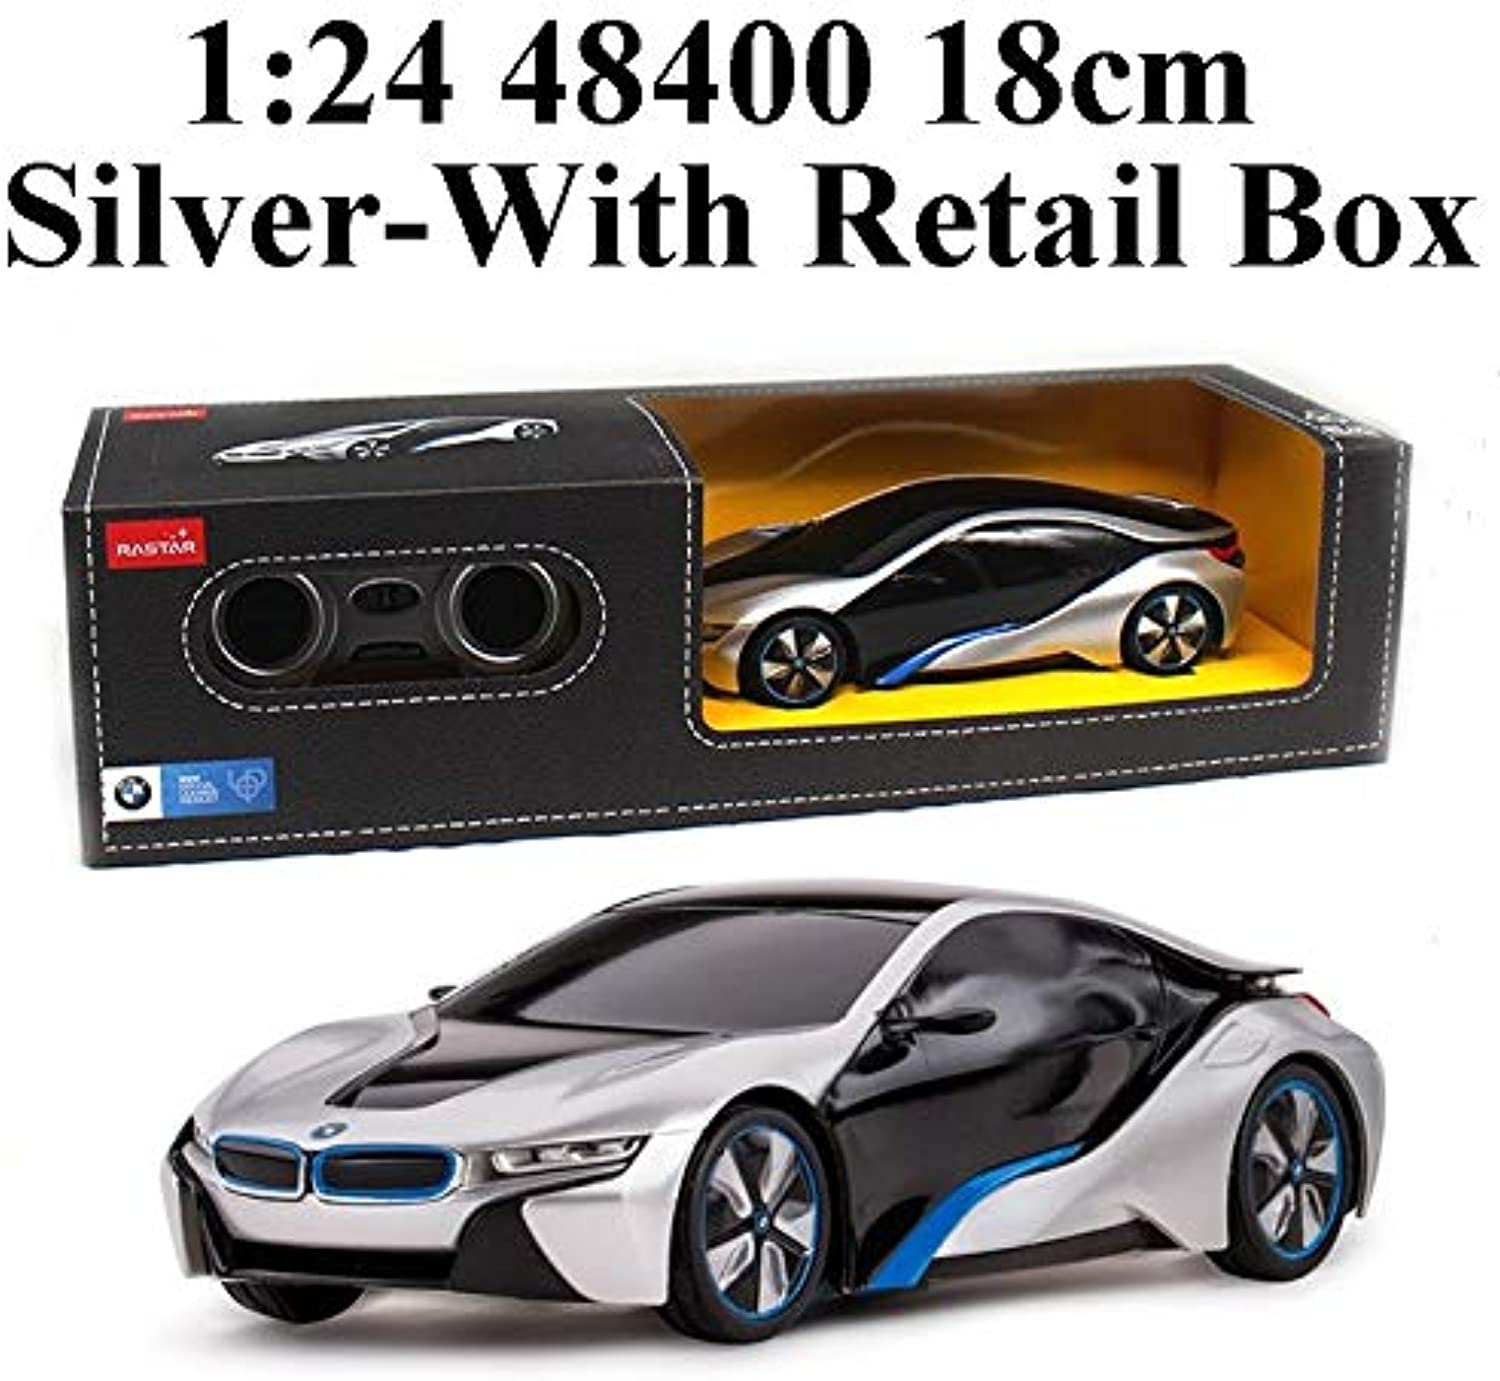 Generic Rastar 1 24 Electric Mini RC Cars Collection Remote Control Toys Radio Controlled Cars Toys for Boys Kids Gifts Girls Toys 2999 48400 Silver in Box